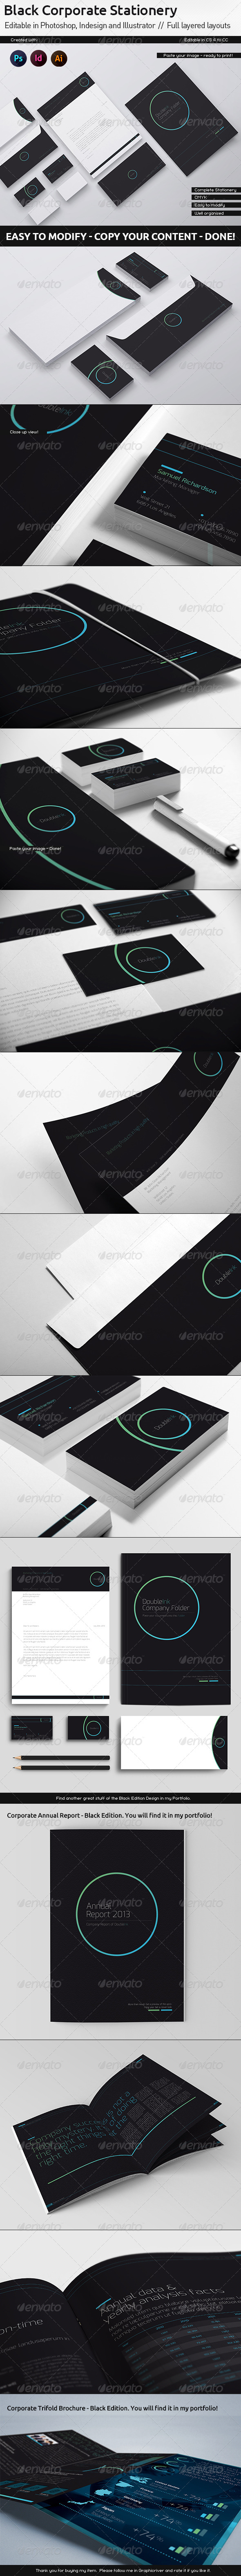 DoubleInk Corporate Stationery - Black Edition - Stationery Print Templates